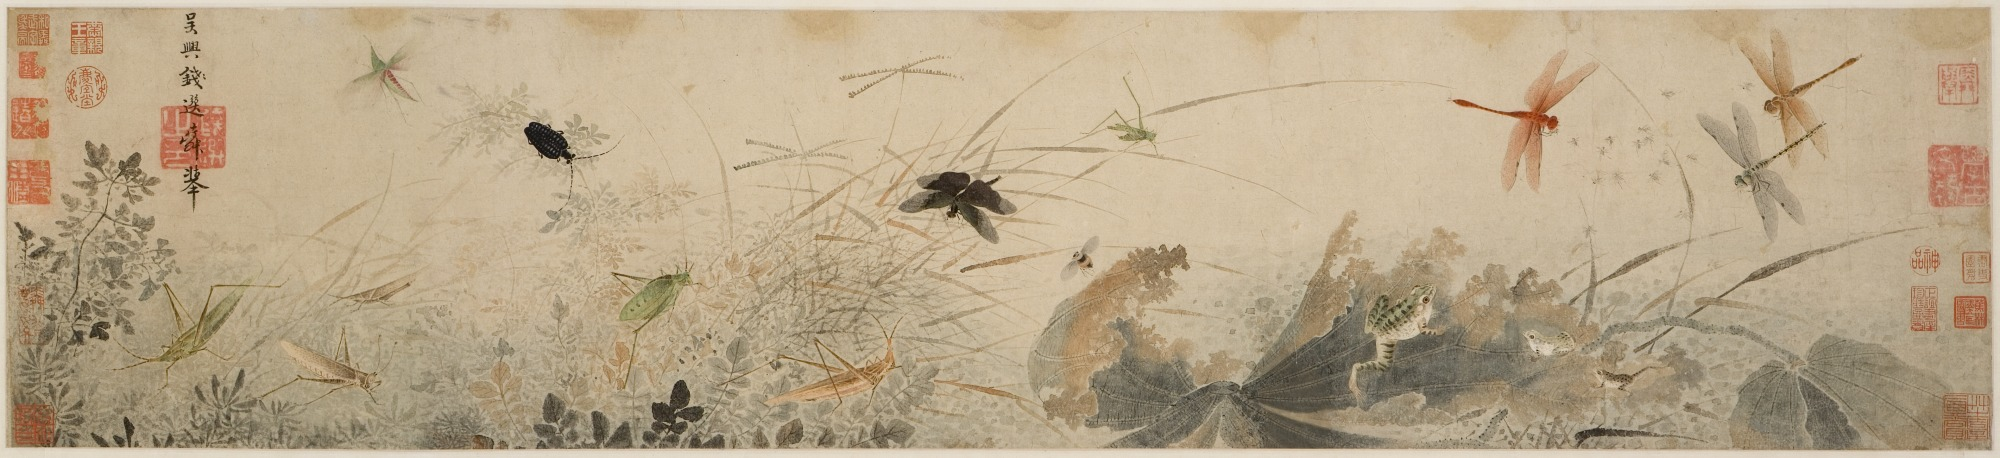 """Insects in Asian Art """"Early Autumn"""" attributed to Qian Xuan, Chinese, 1235-1305 - Detroit Institute of Arts"""